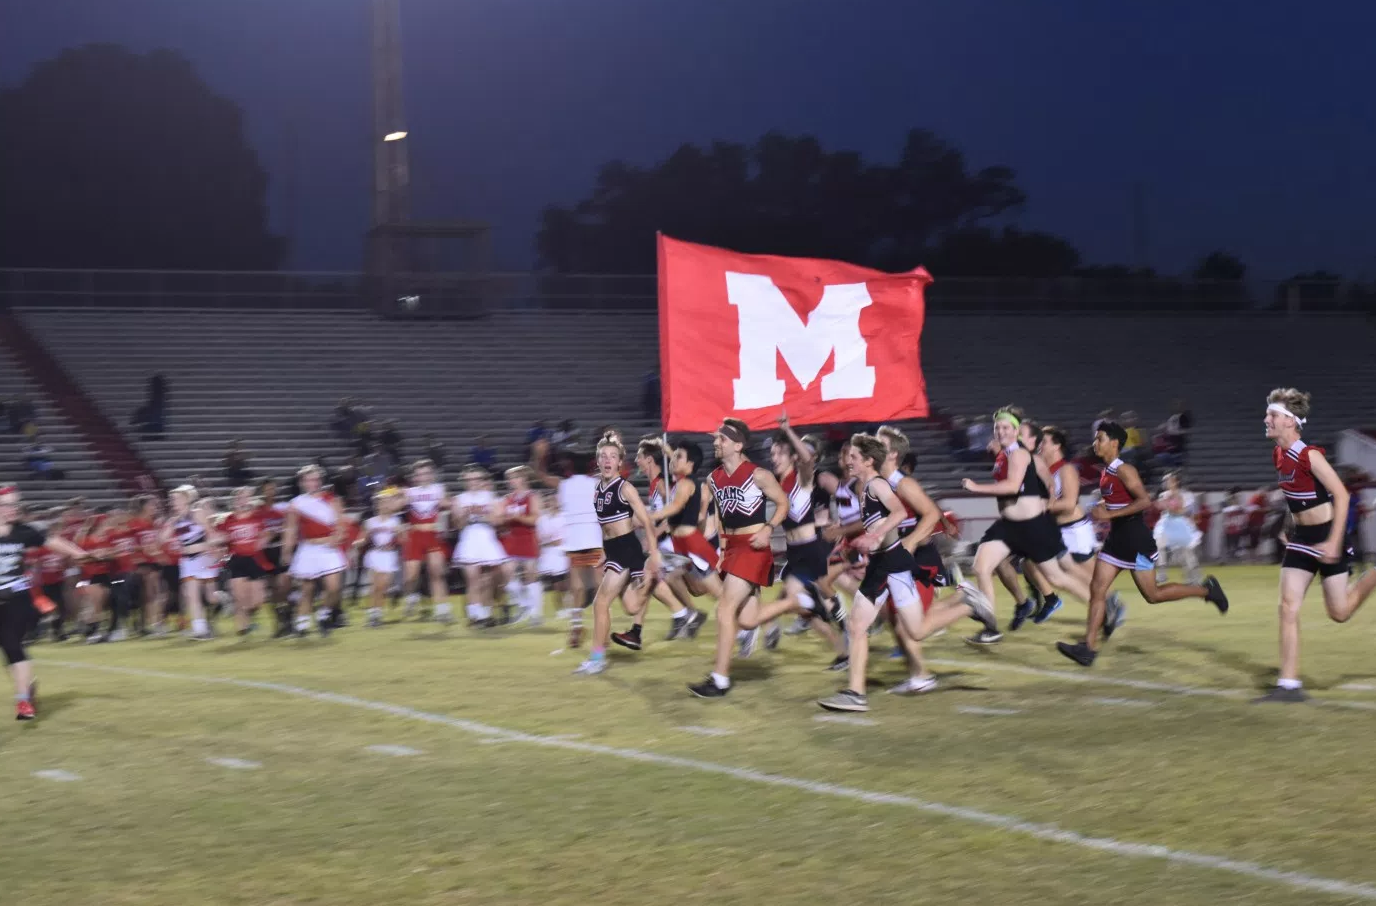 Seniors run the flag down the field after their victory. Photo by Piper Hansen.